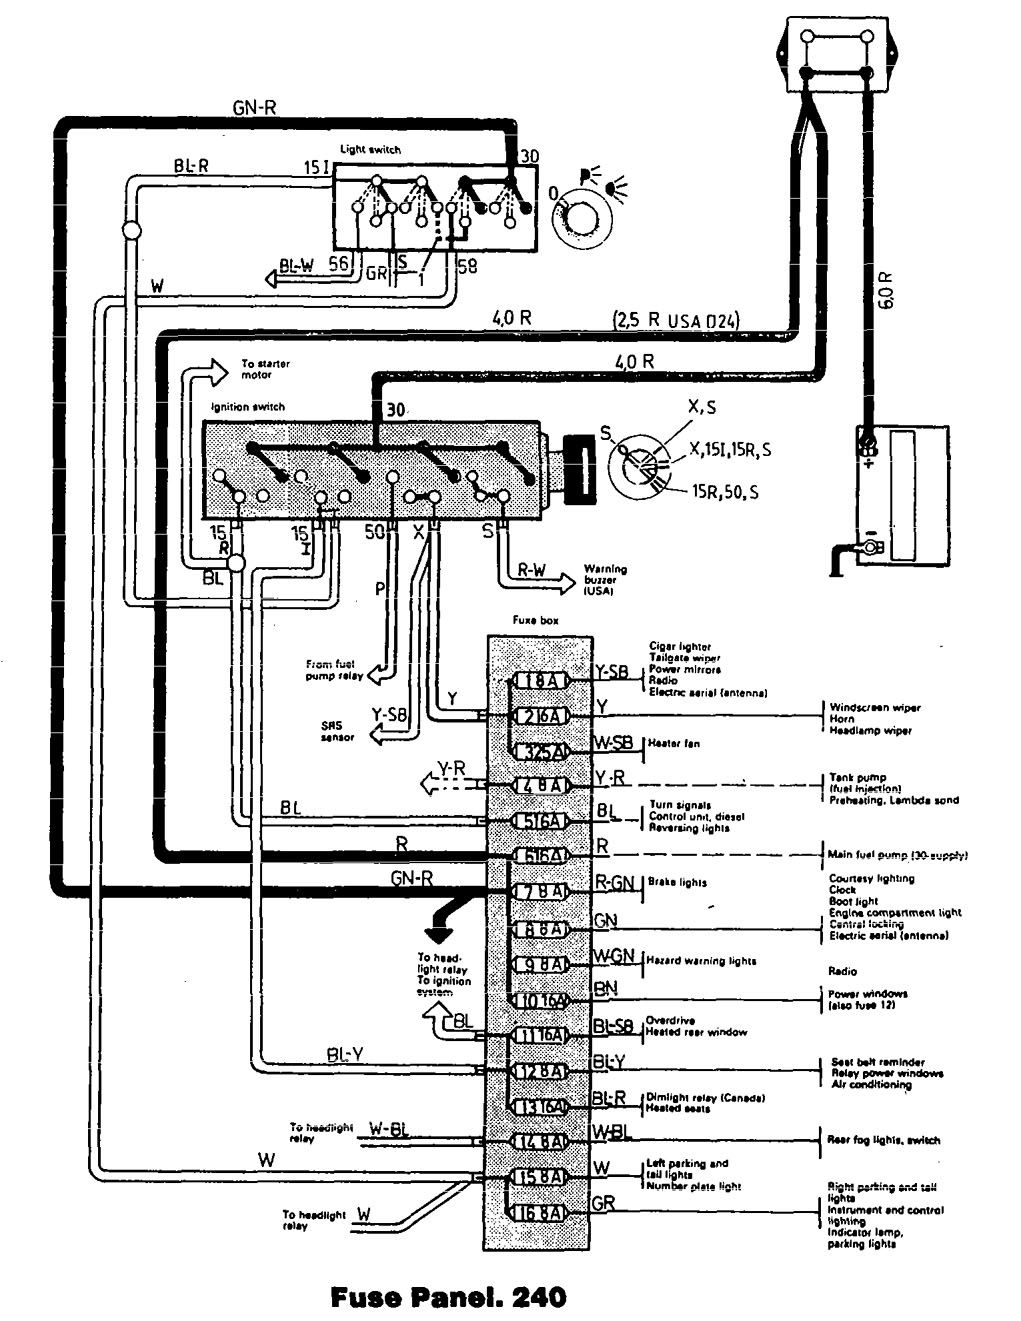 chrysler lebaron fuse box diagram